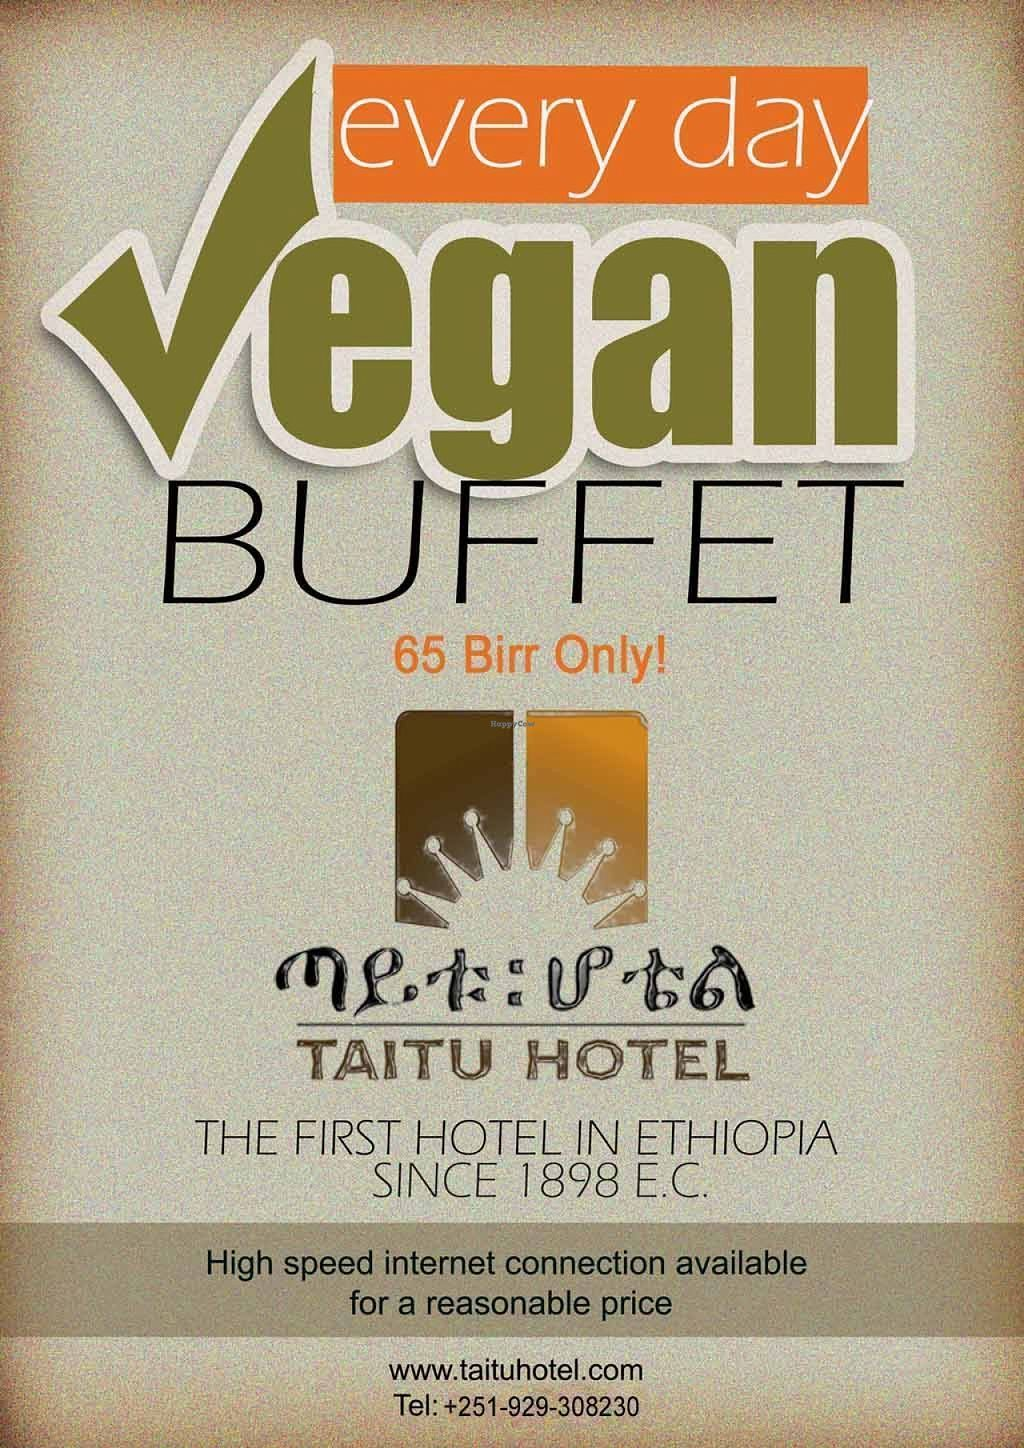 """Photo of Itegue Taitu Hotel  by <a href=""""/members/profile/Mesfin"""">Mesfin</a> <br/>Restaurant poster. 100% vegan buffet menu dubbed the best vegan meal you can get in Addis. Serves everyday for lunch only from 12-3 pm local time. Included are two types of injera, most local Ethiopian veg platter options found in our famed Beyaynetu <br/> December 17, 2015  - <a href='/contact/abuse/image/67103/128780'>Report</a>"""